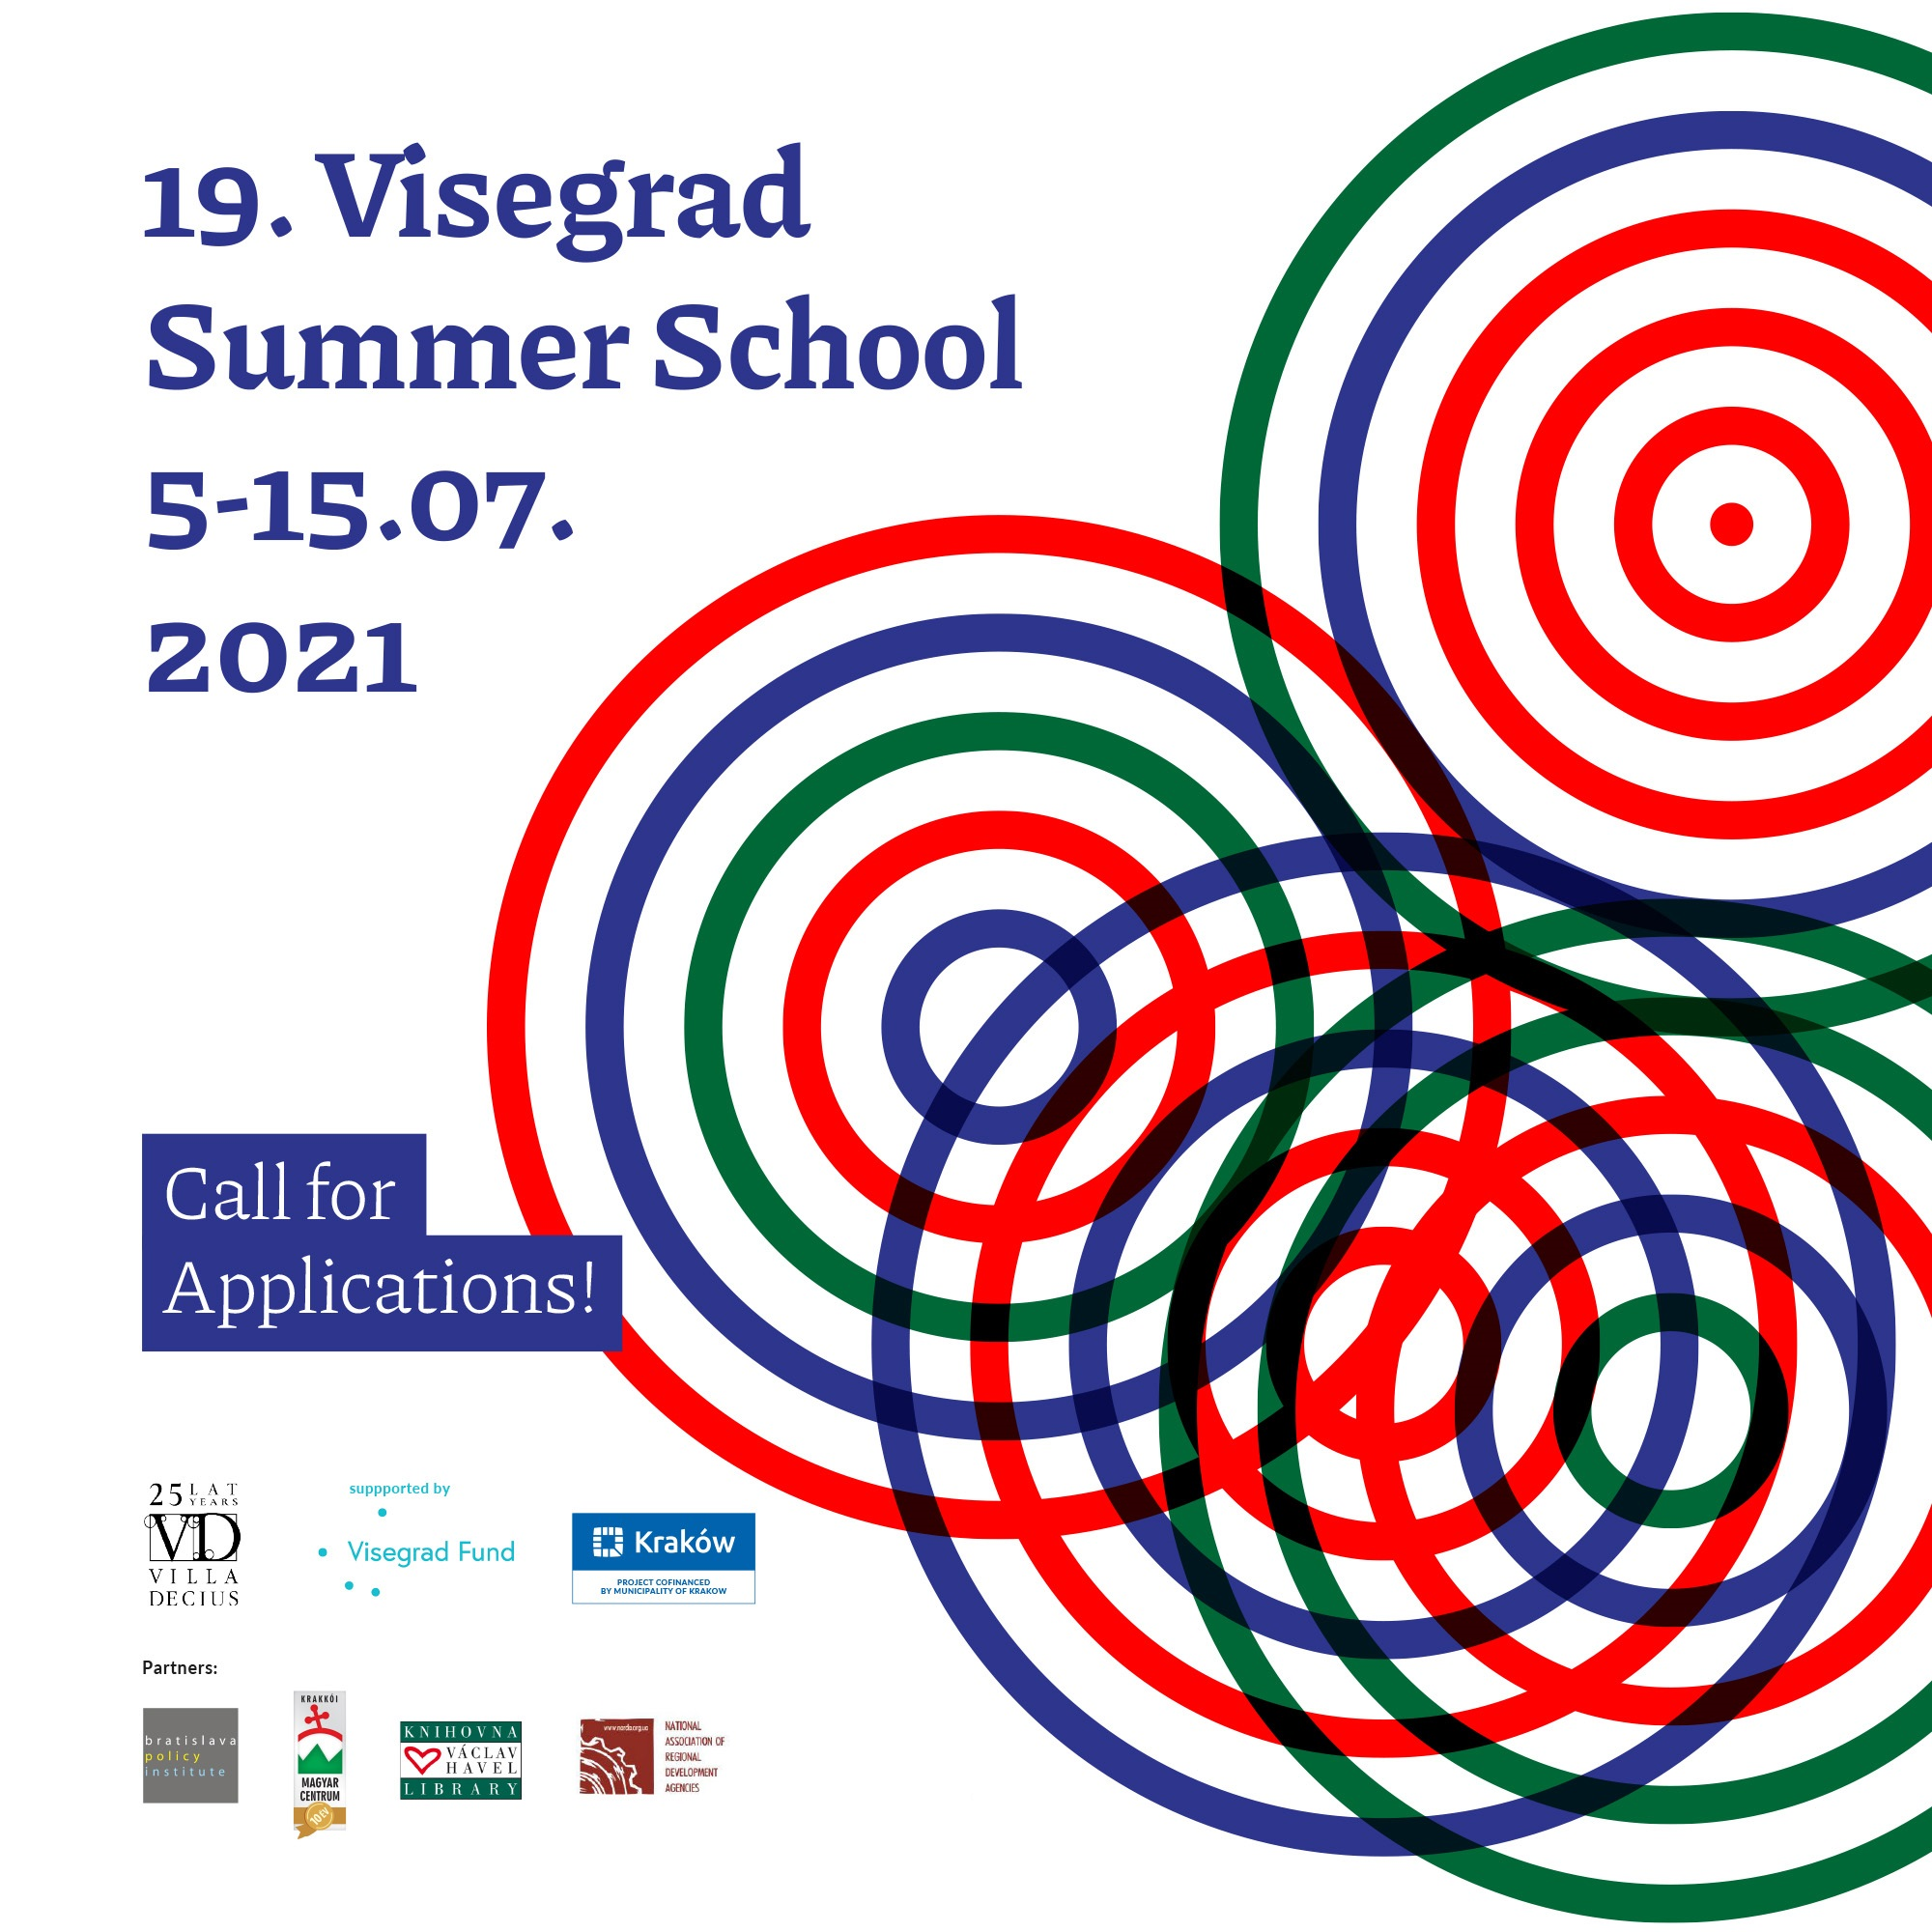 Visegrad Summer School calls for applications